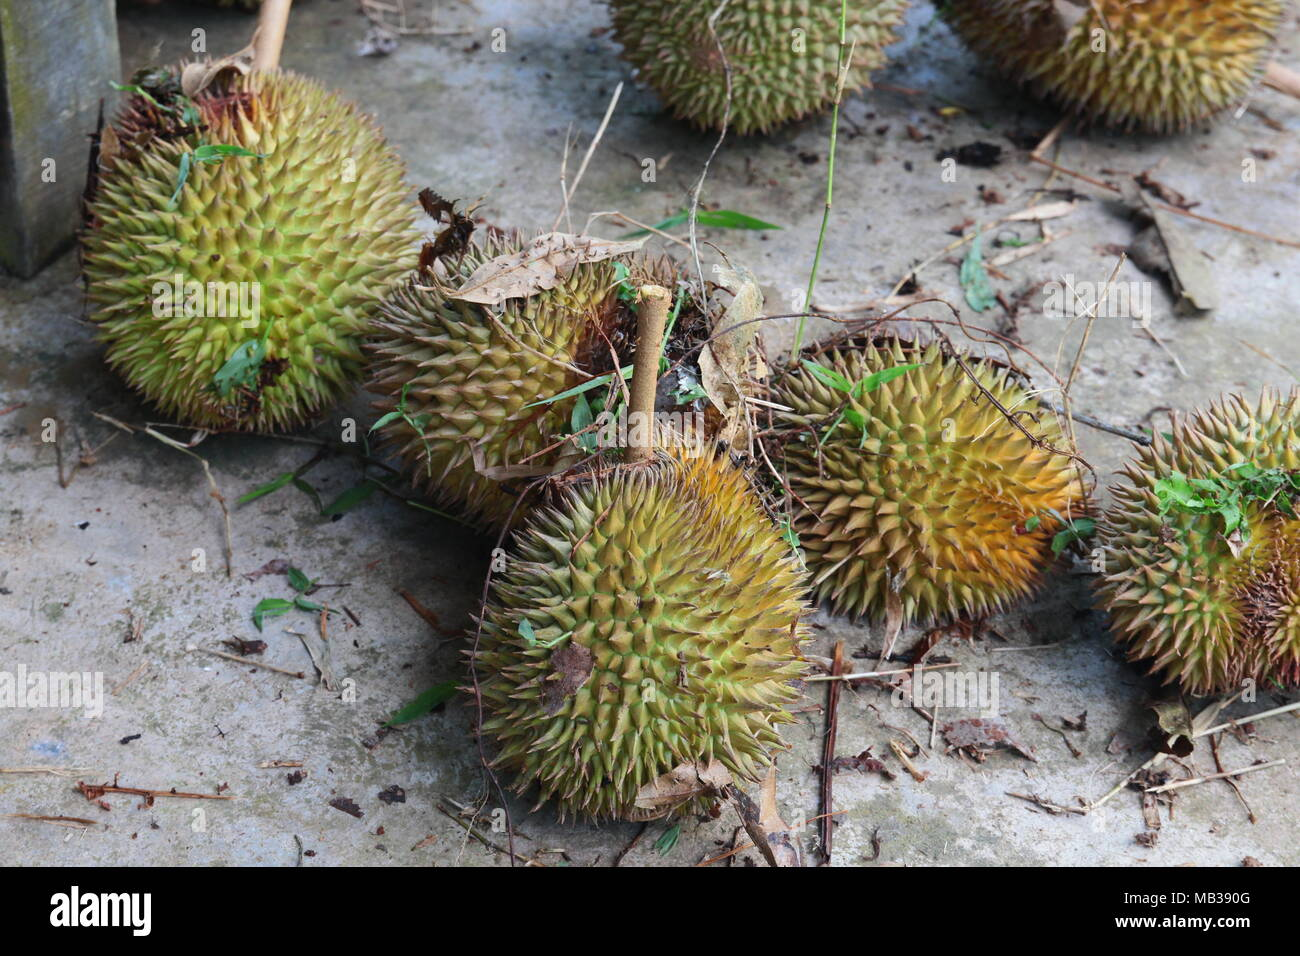 Ripened durian in fruit garden underbrush. Falled from the durian tree. Really for pick up and eat. - Stock Image